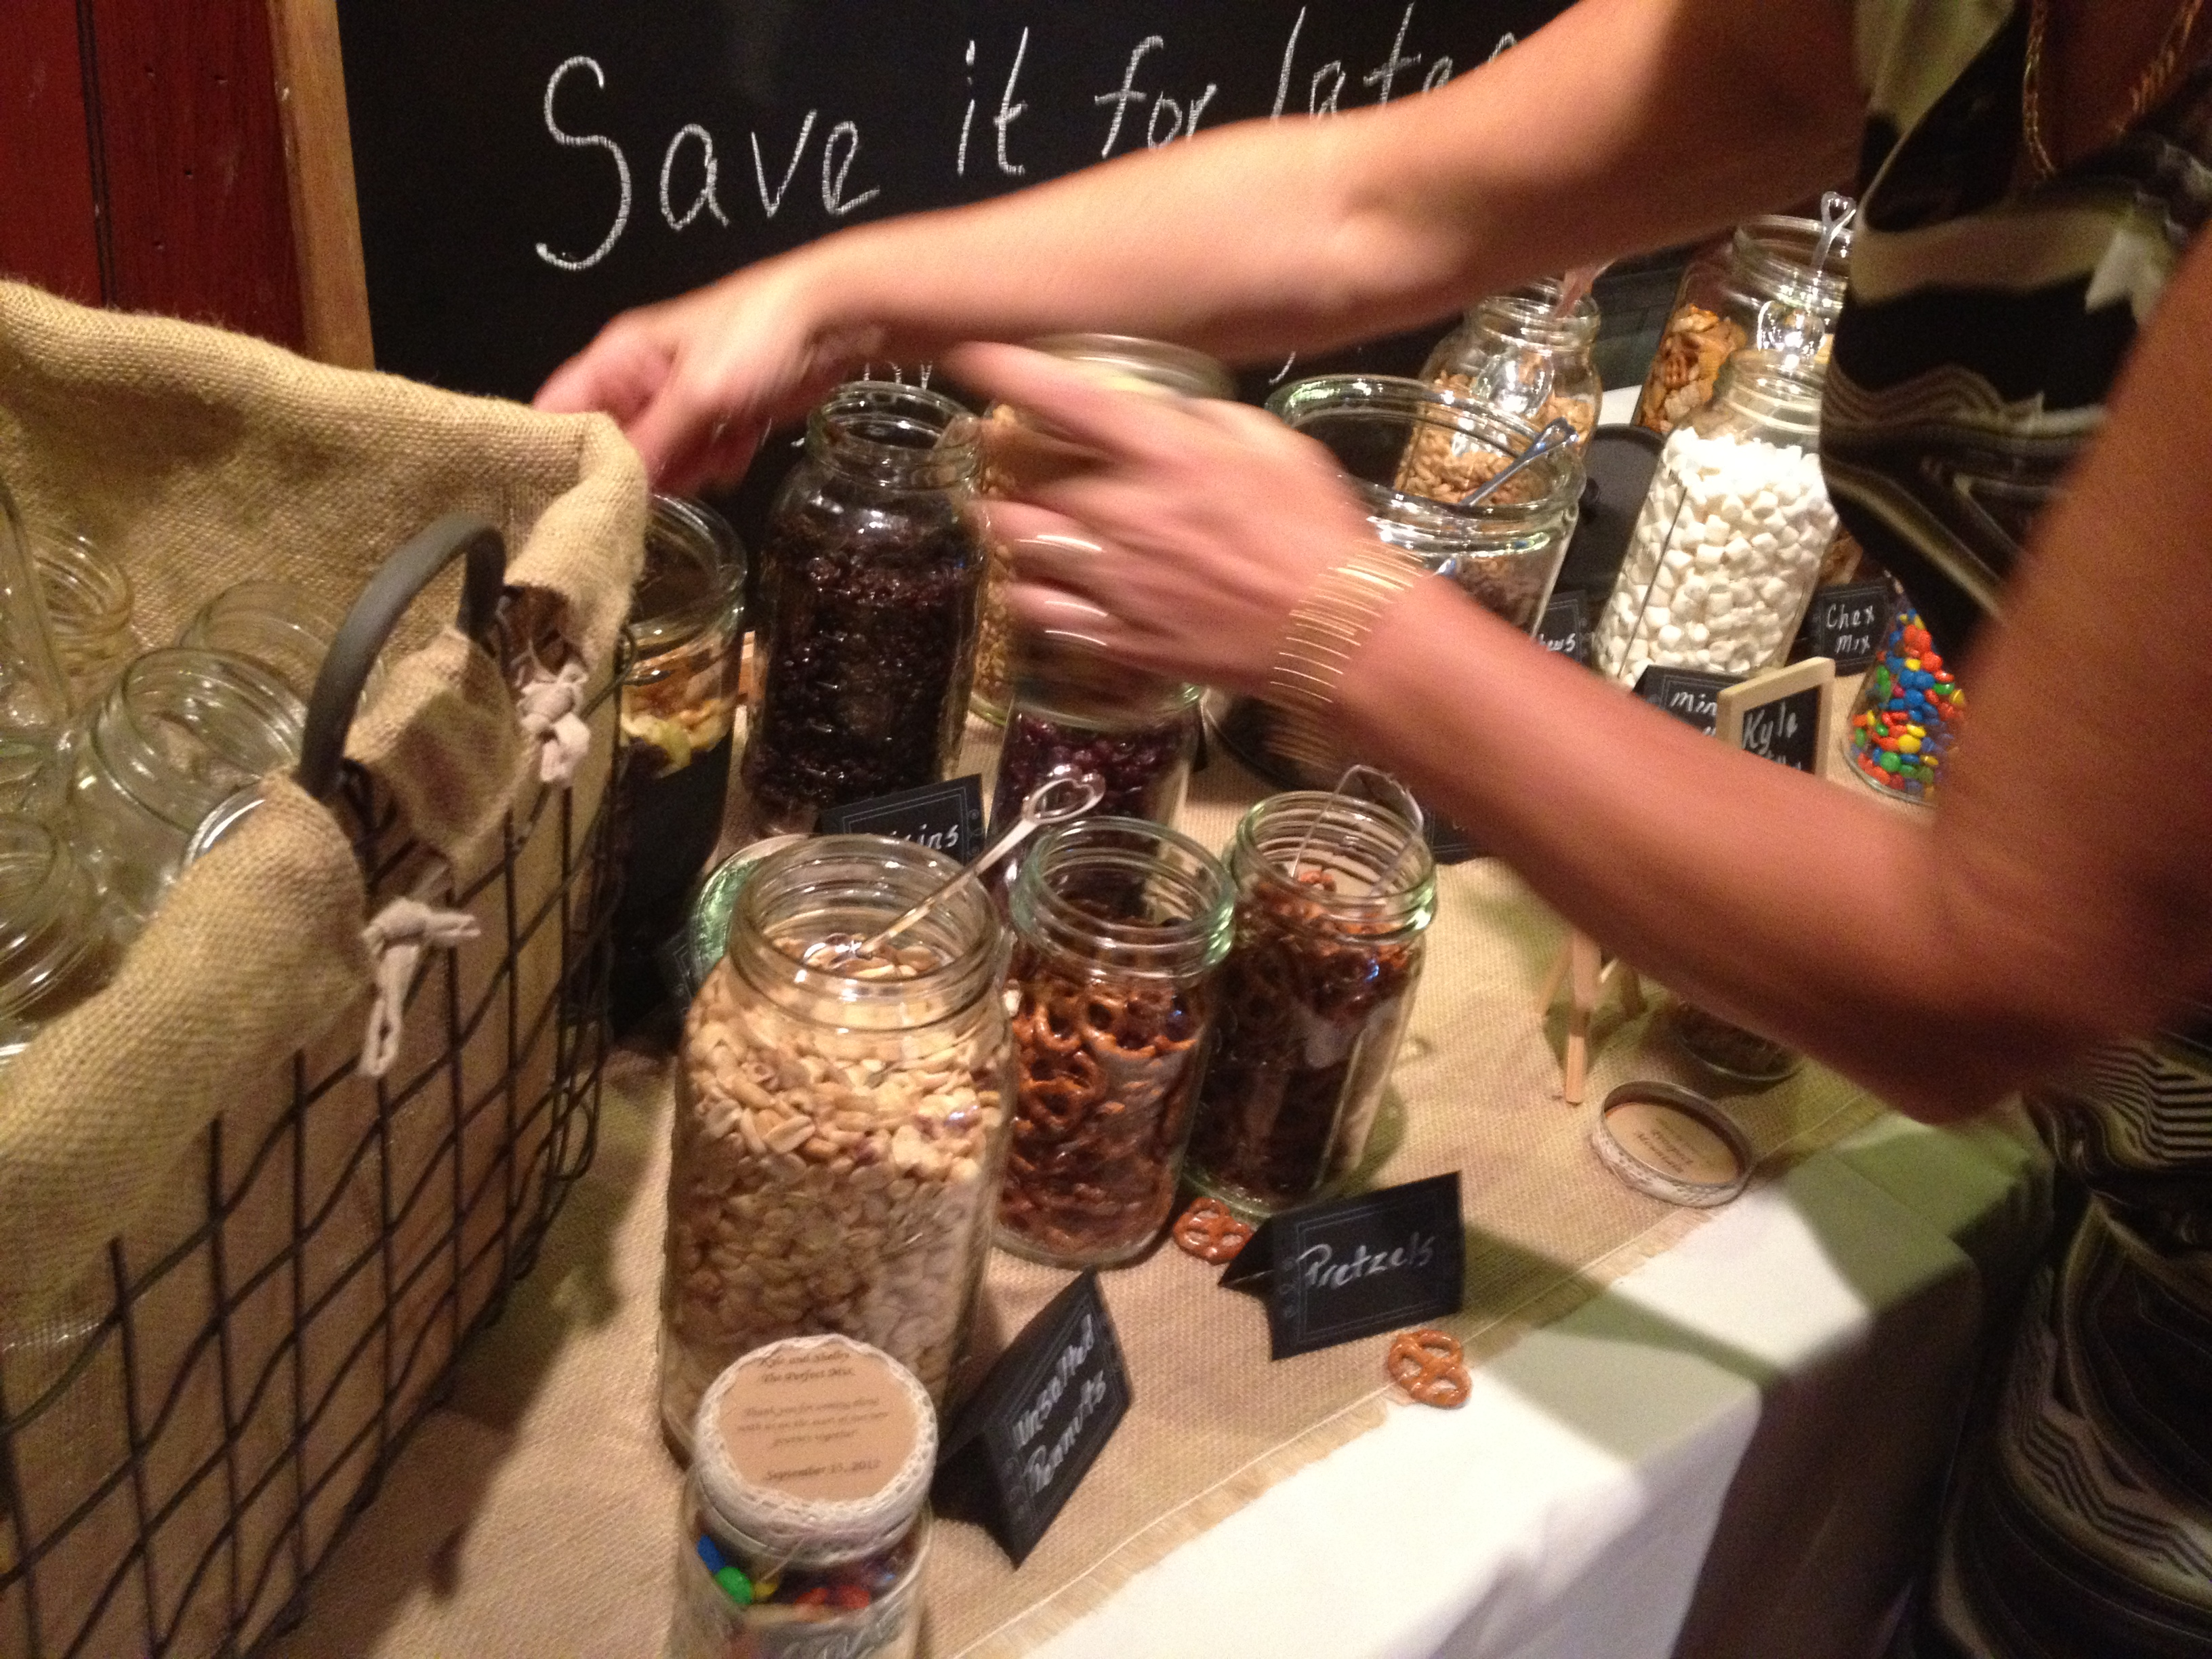 make your own trail mix wedding favor thedjservicecom albany ny wedding dj sweet 16 dj reunion party mitzvah dj of troy schenectady saratoga